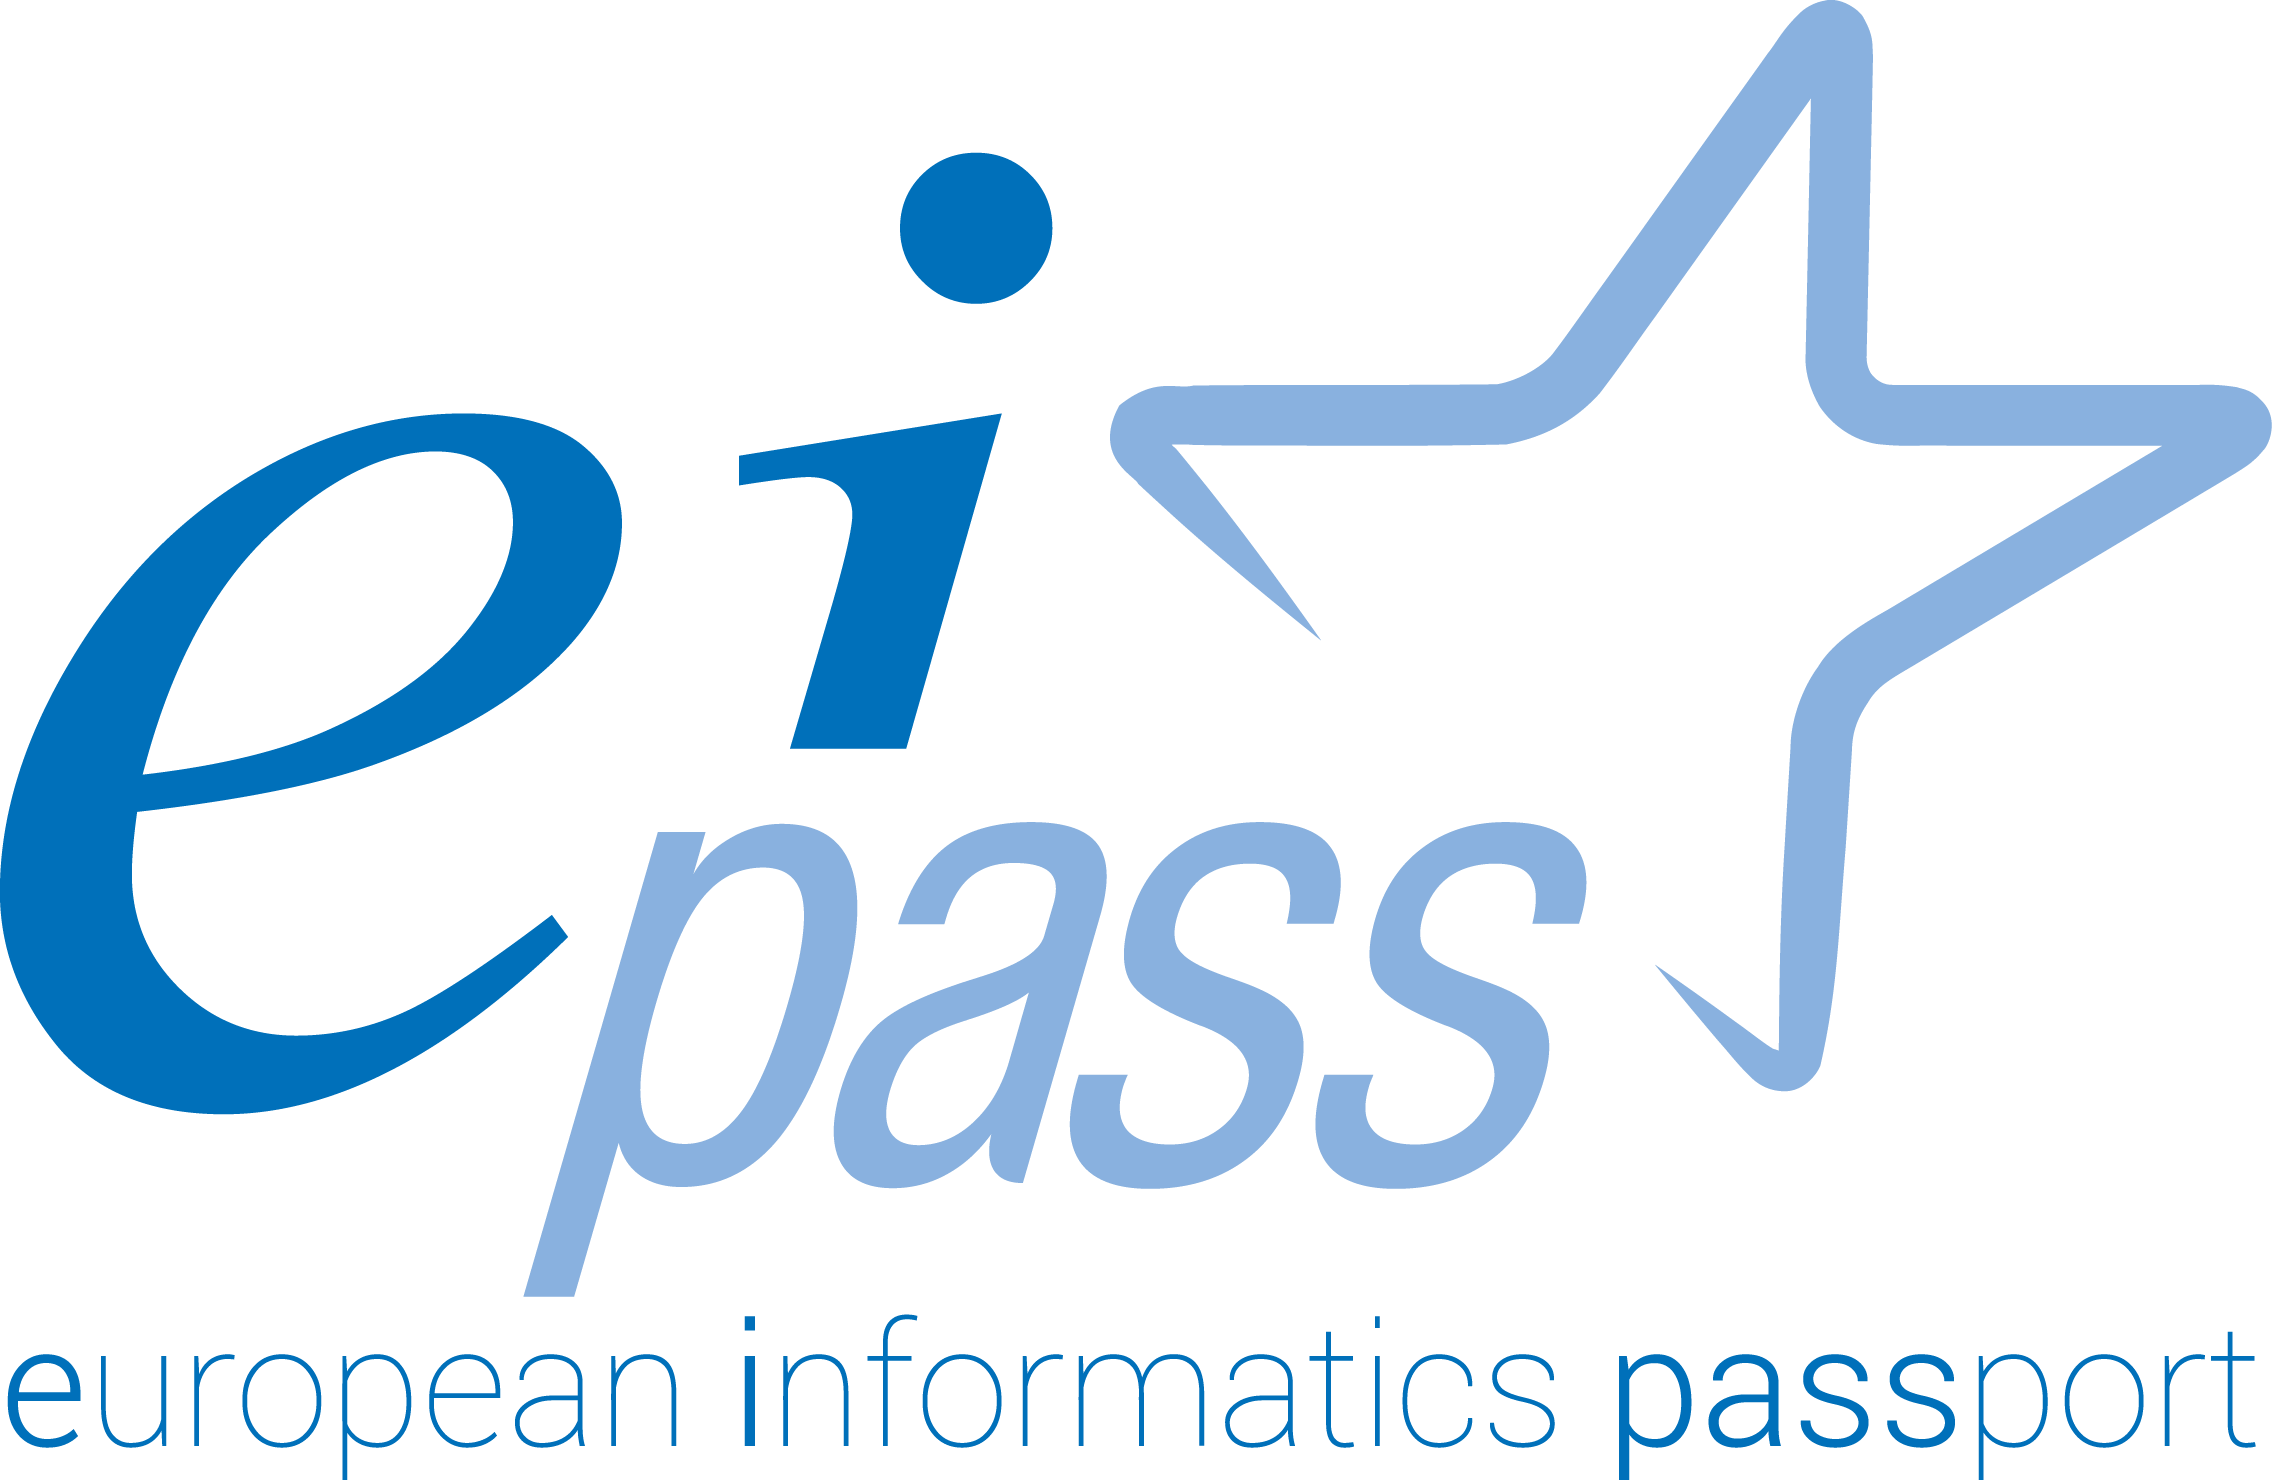 logo_eipass.png - 98.35 kb